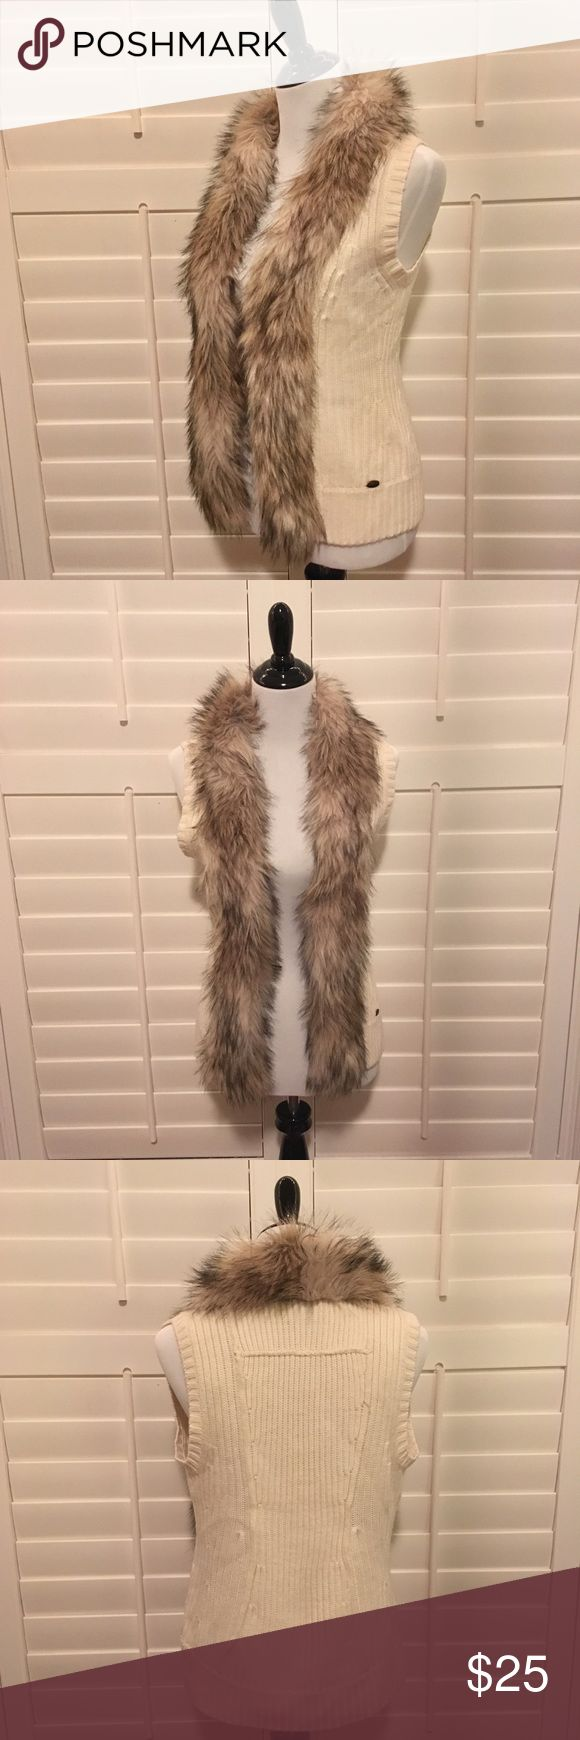 GUESS Faux Fur Trimmed Sweater Vest GUESS Faux Fur Trimmed Sweater Vest Given as gift purchased in NYC Never worn Size Large Guess Jackets & Coats Vests